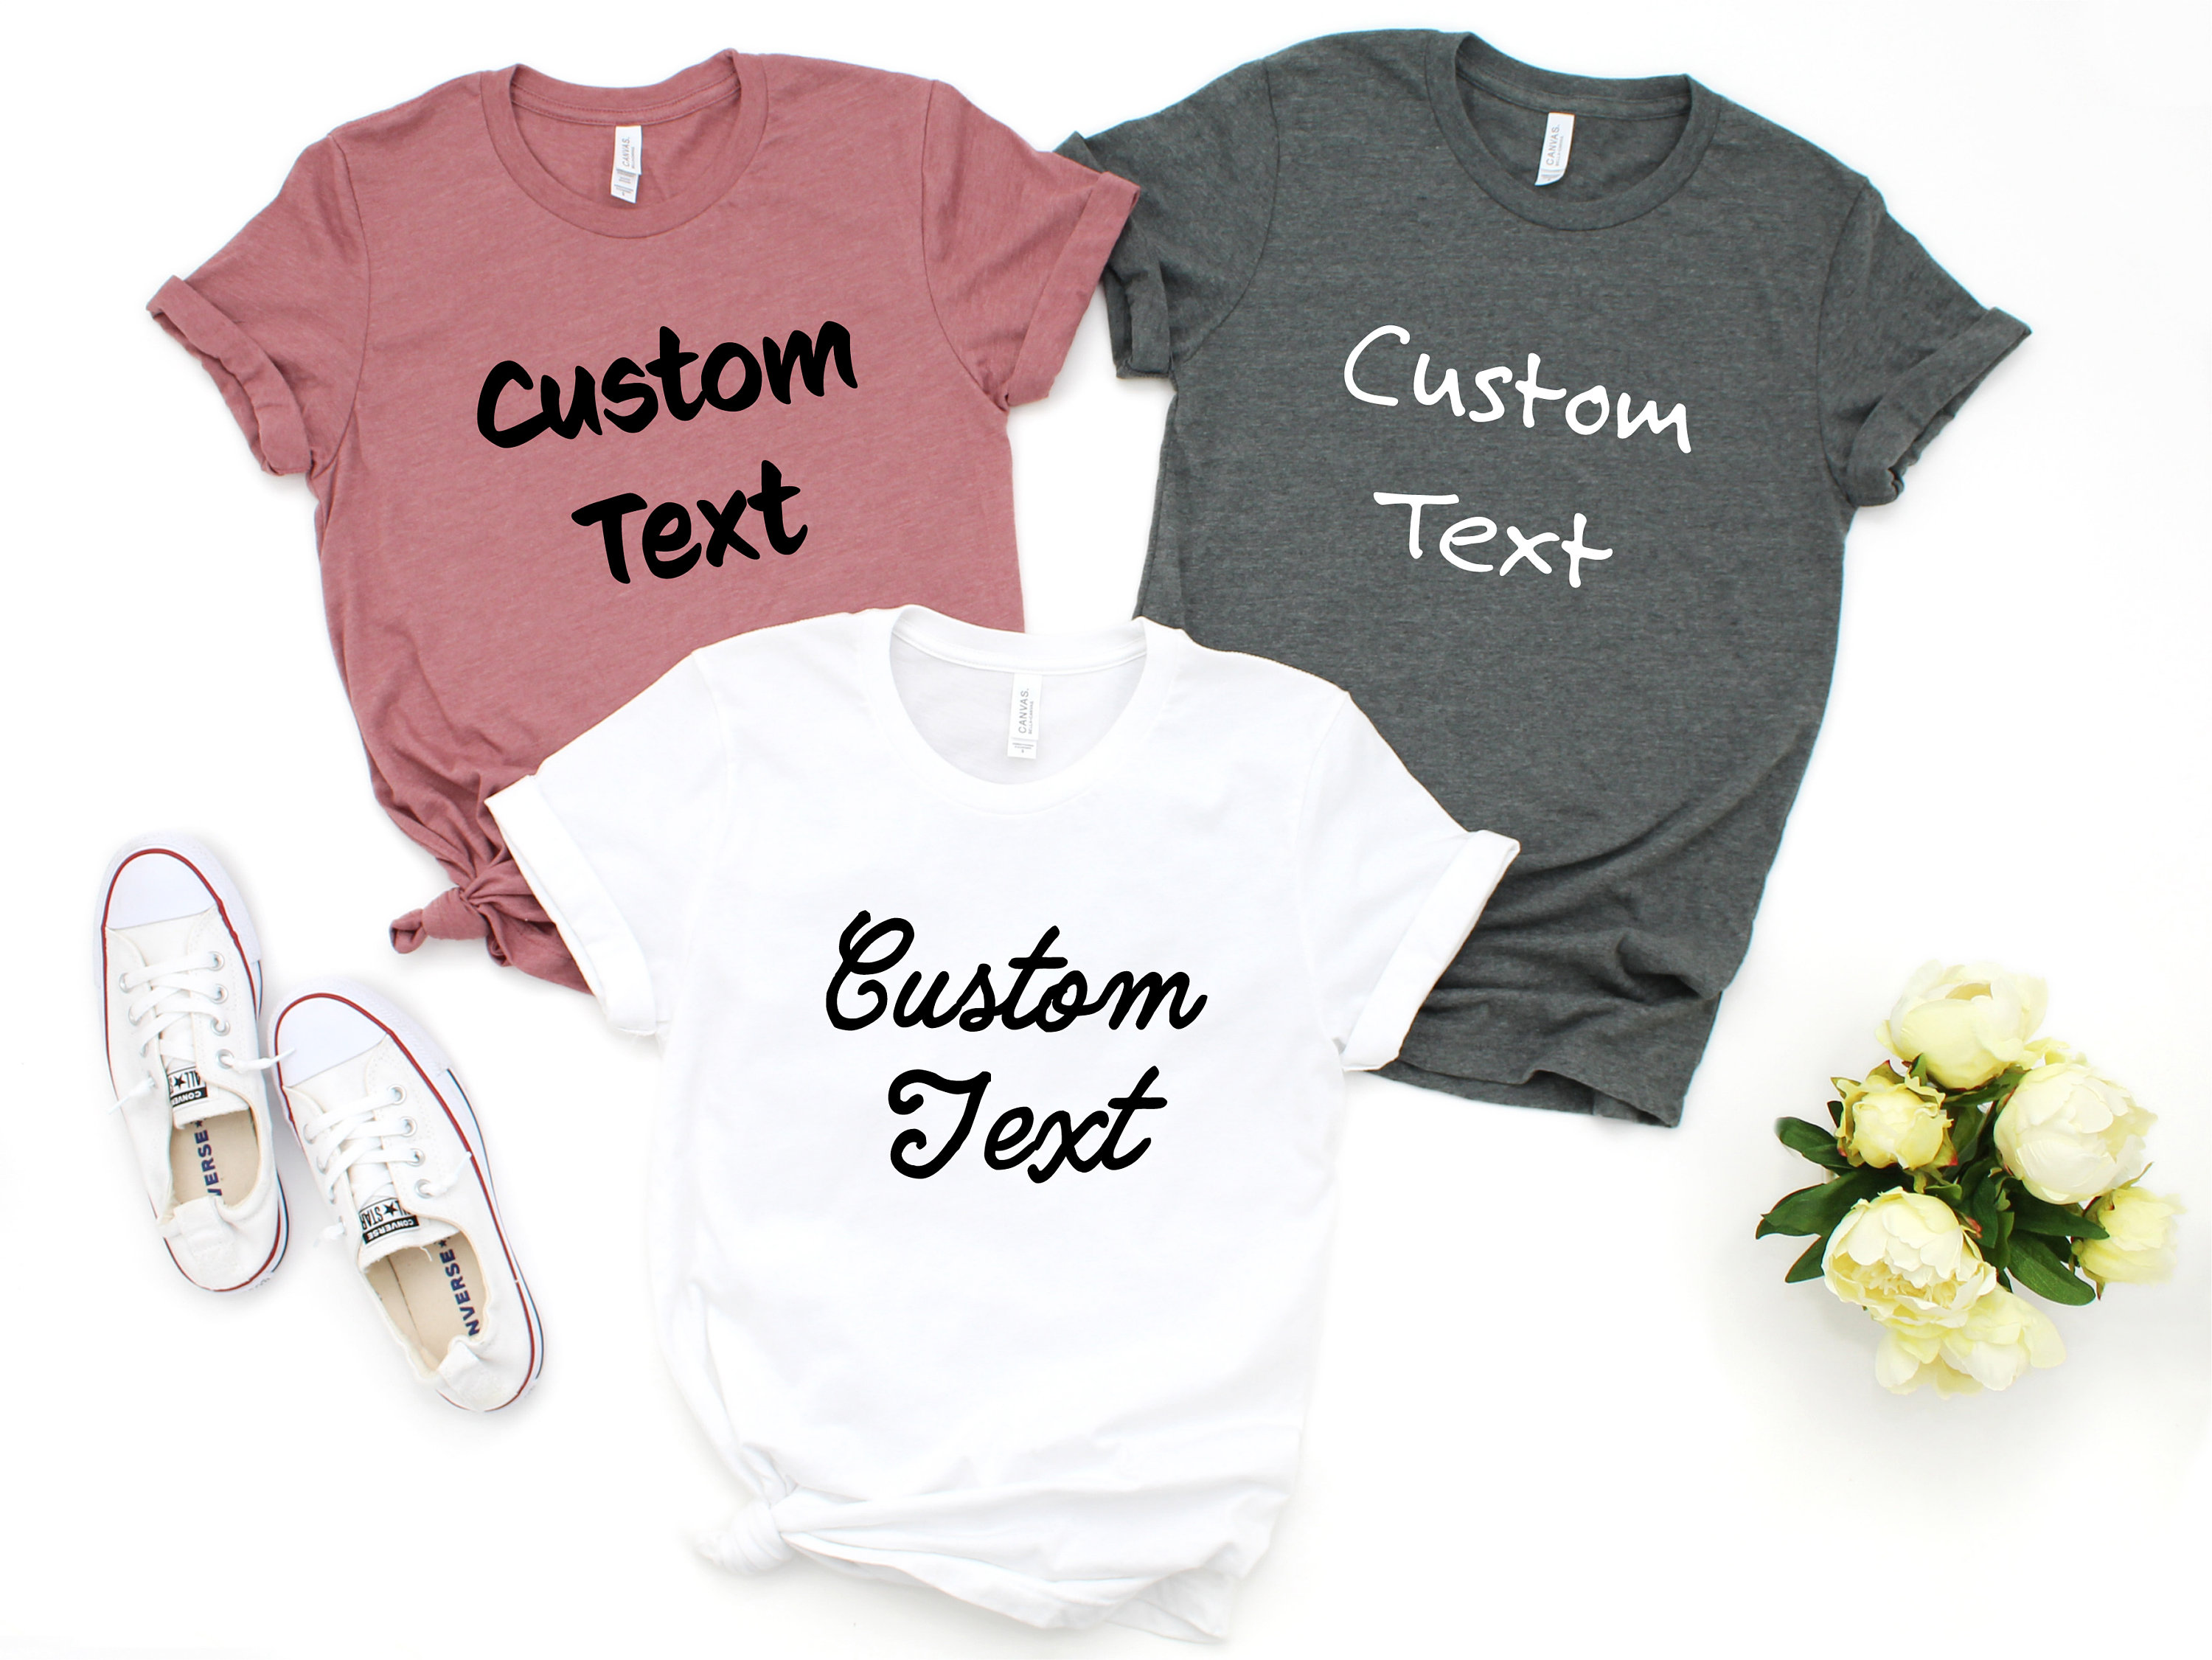 Custom Shirt - Customizable Tshirt - Custom Tshirt - Personalized Shirt - Custom Shirt Printing - Womens Mens Unisex - Bella Canvas Shirt - Unisex Tshirt